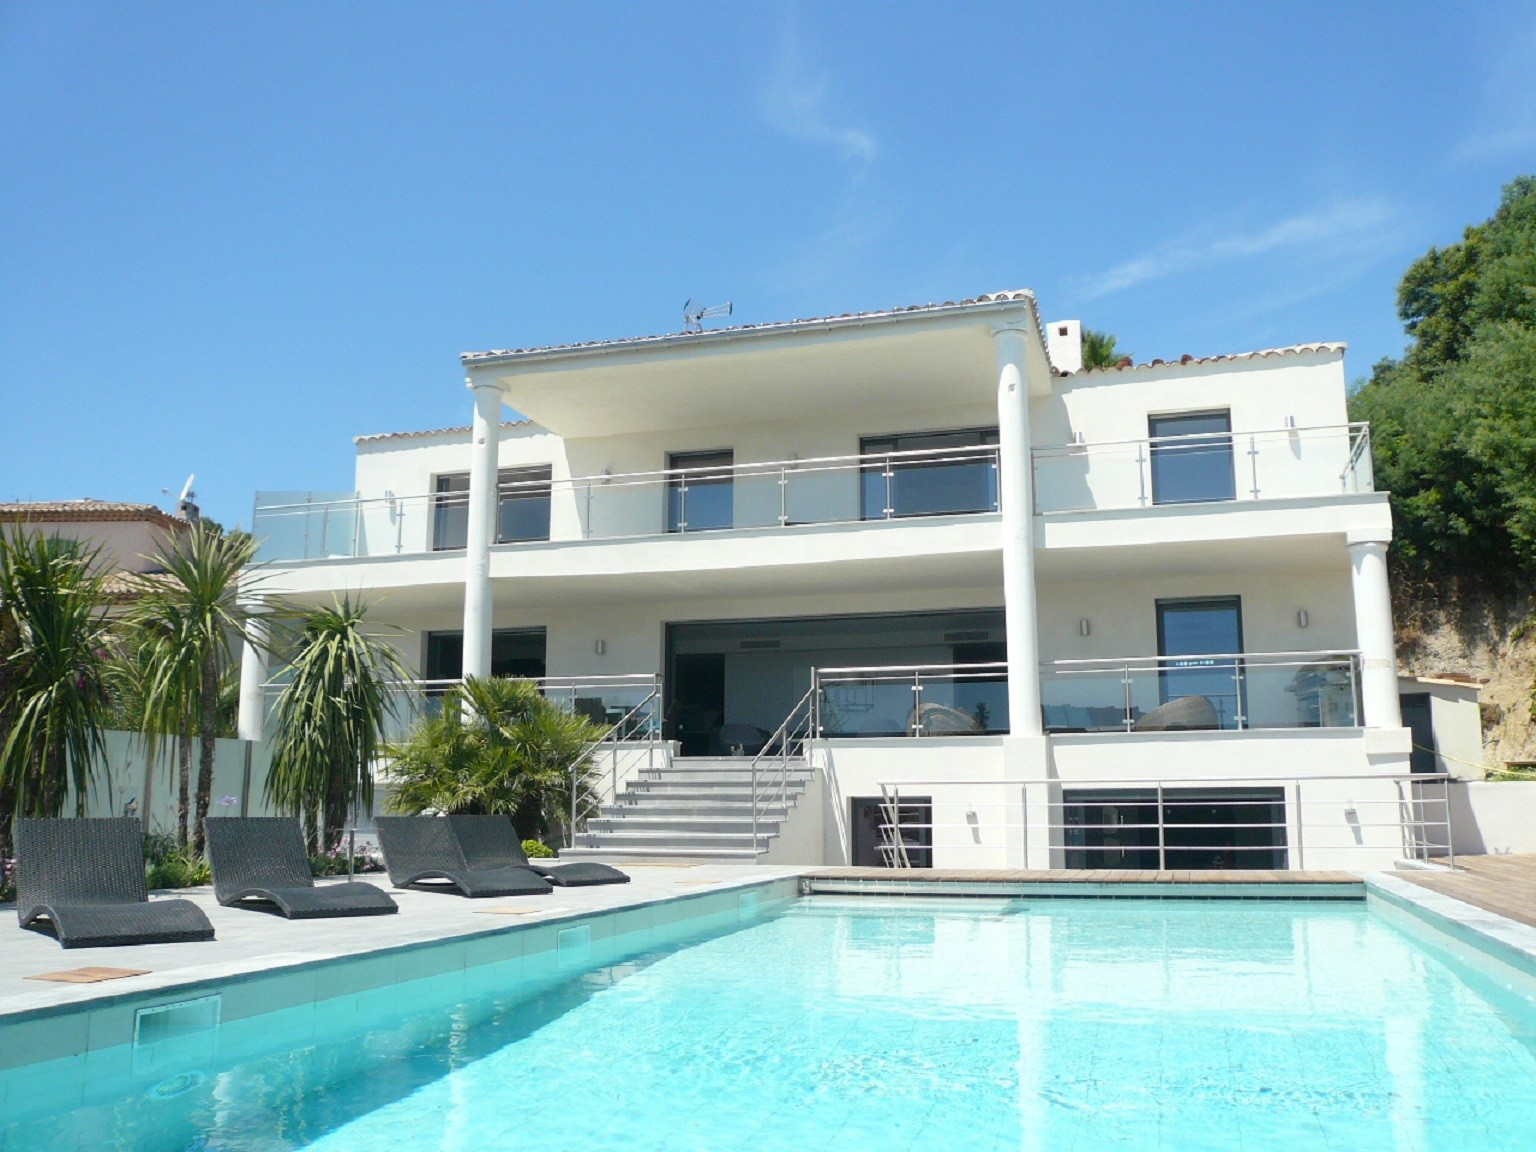 Beautiful villa with pool in Antibes